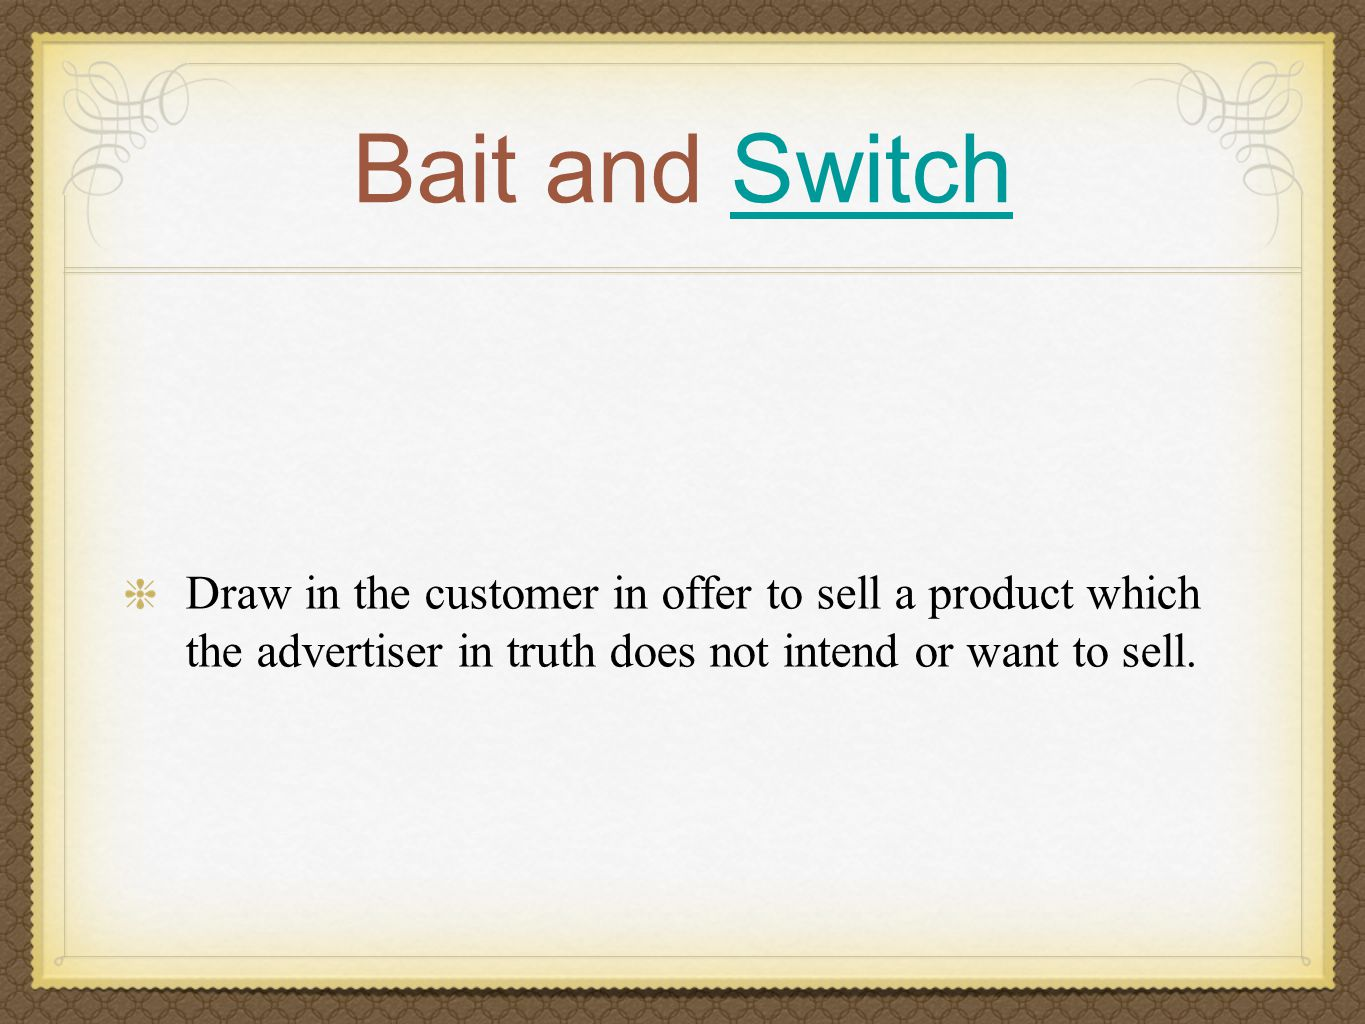 Bait and SwitchSwitch Draw in the customer in offer to sell a product which the advertiser in truth does not intend or want to sell.